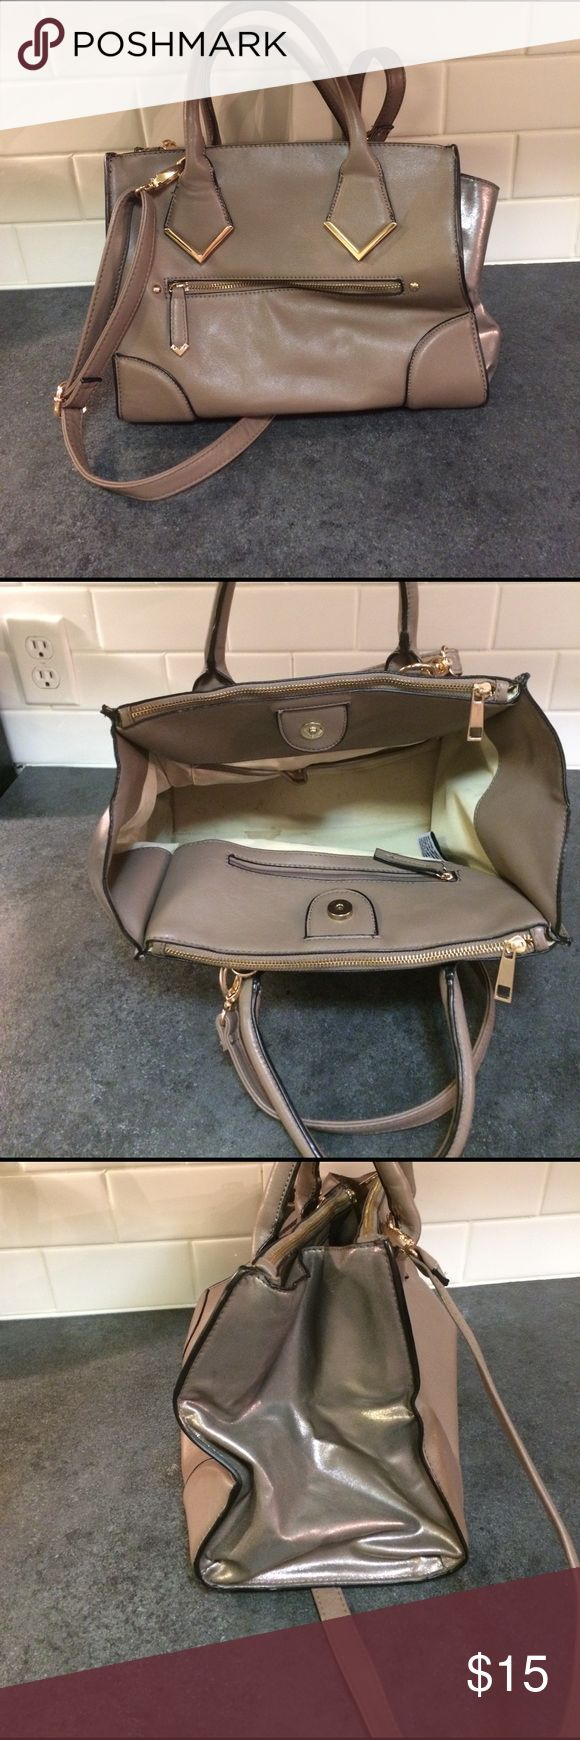 "2 Tone Aldo Bag Beautiful Aldo Bag. Gold hardware. Body of Bag is a taupe color, sides are metallic. 3 large compartments. Inside of Bag needs cleaning. Good used condition. 12"" length X 11"" depth x 7.75"" width. Aldo Bags"